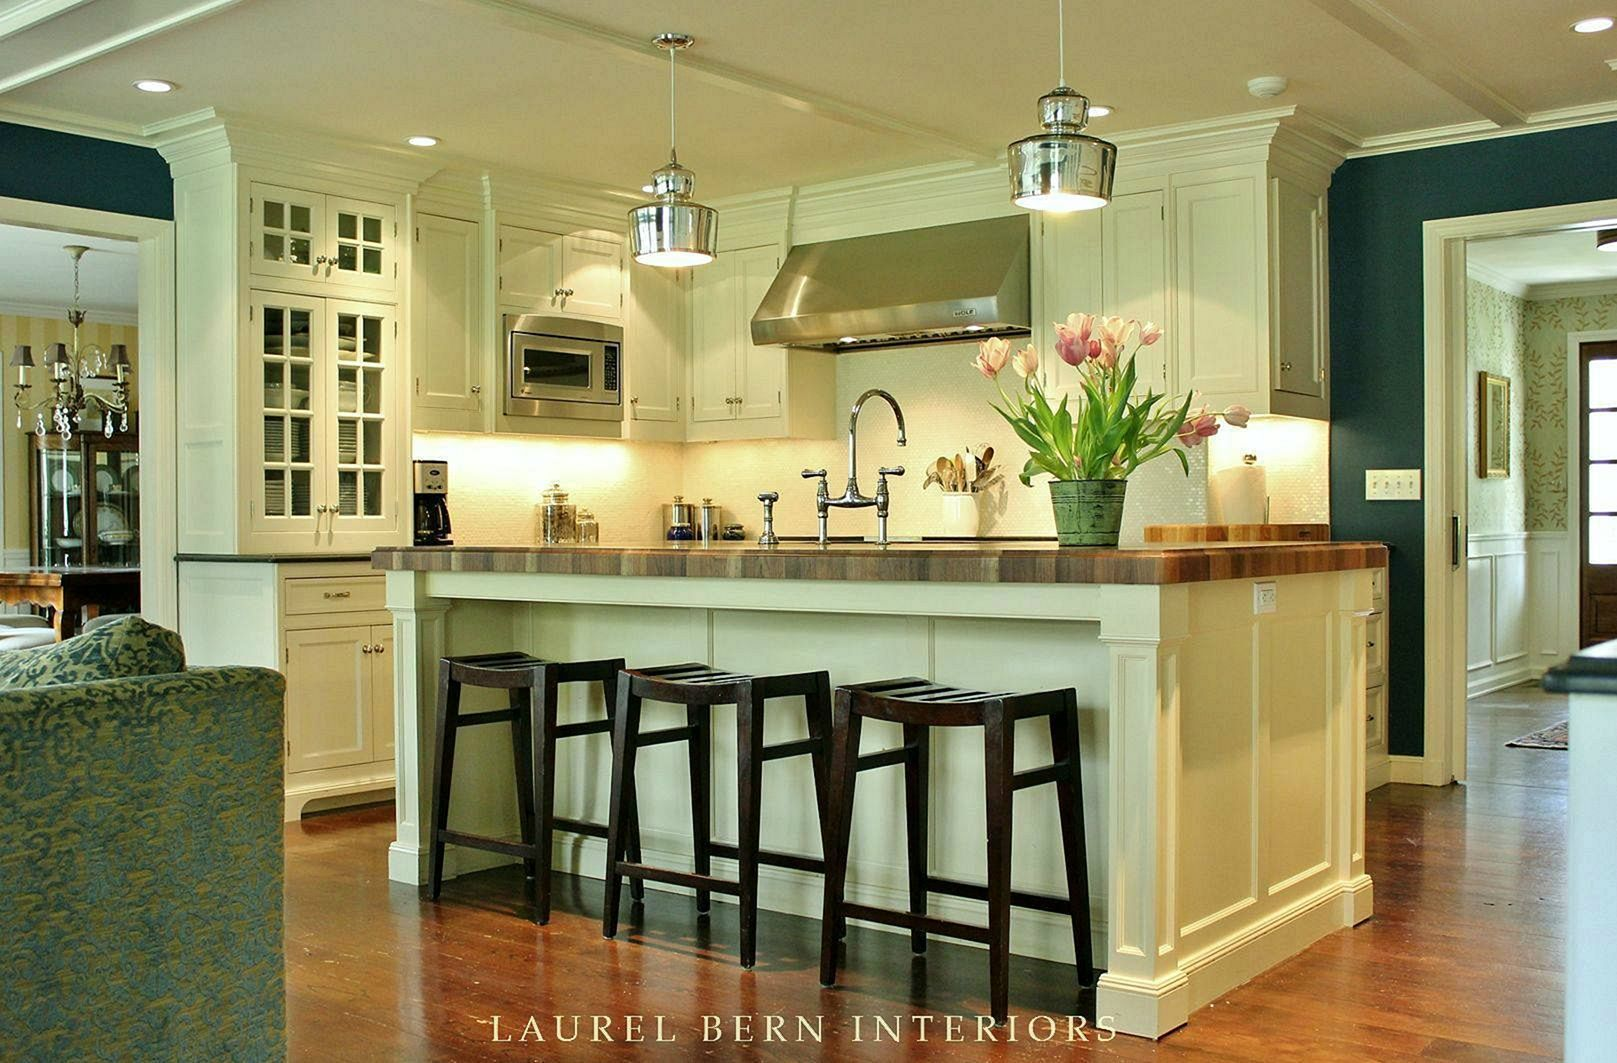 Best Top 5 Laurel Bern Interior Collections You Have To Know 400 x 300